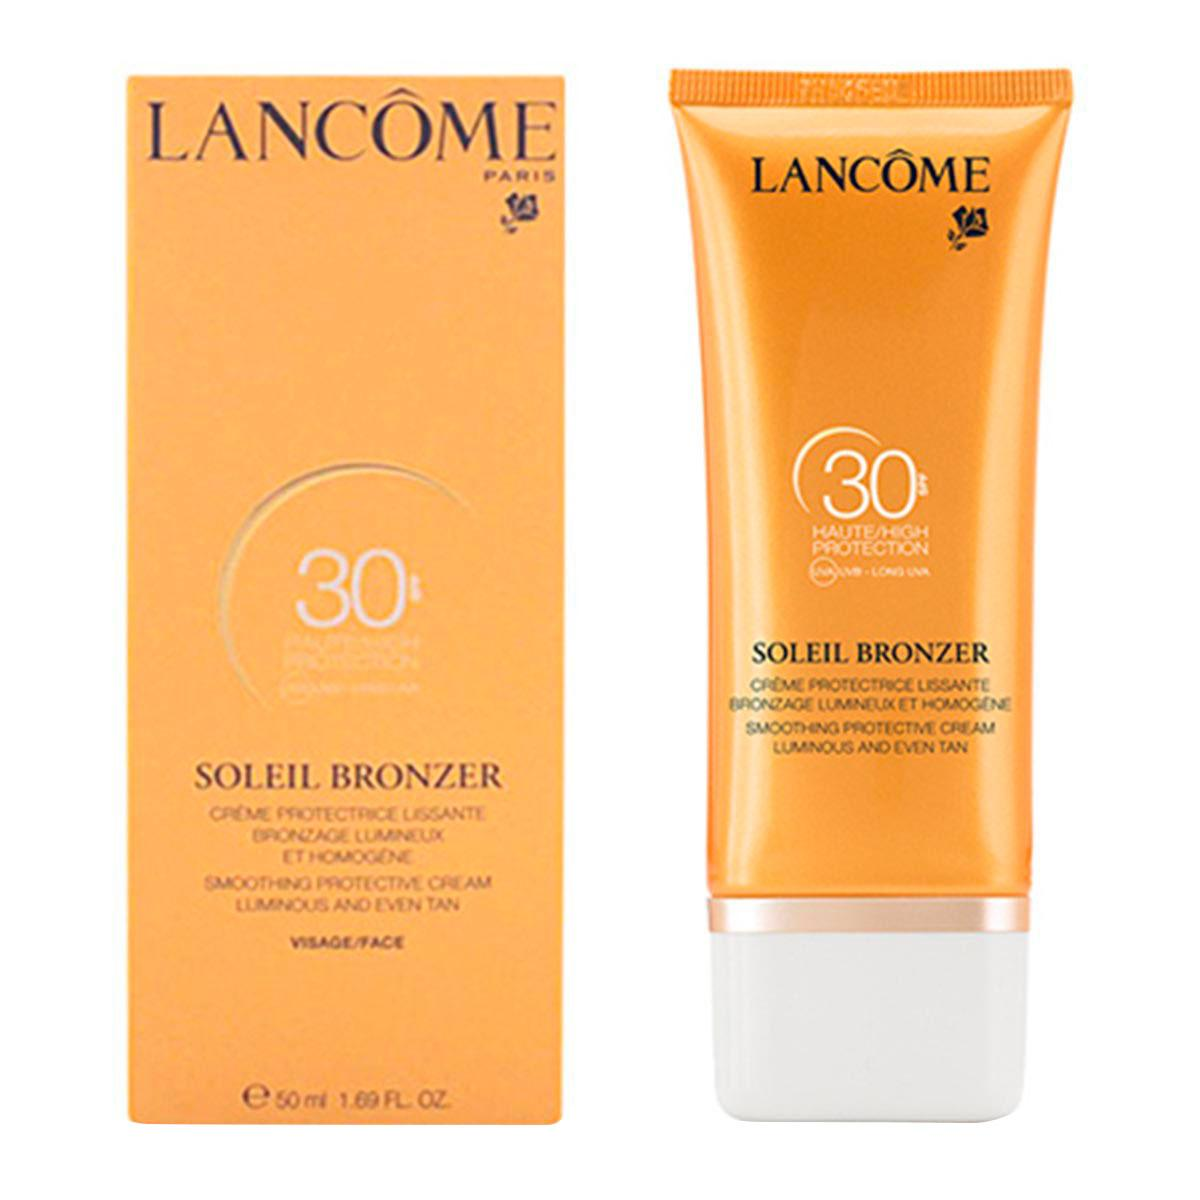 Lancome-fragrances Soleil Bronzer Spf30 Face Smoothing Protective Cream 50ml